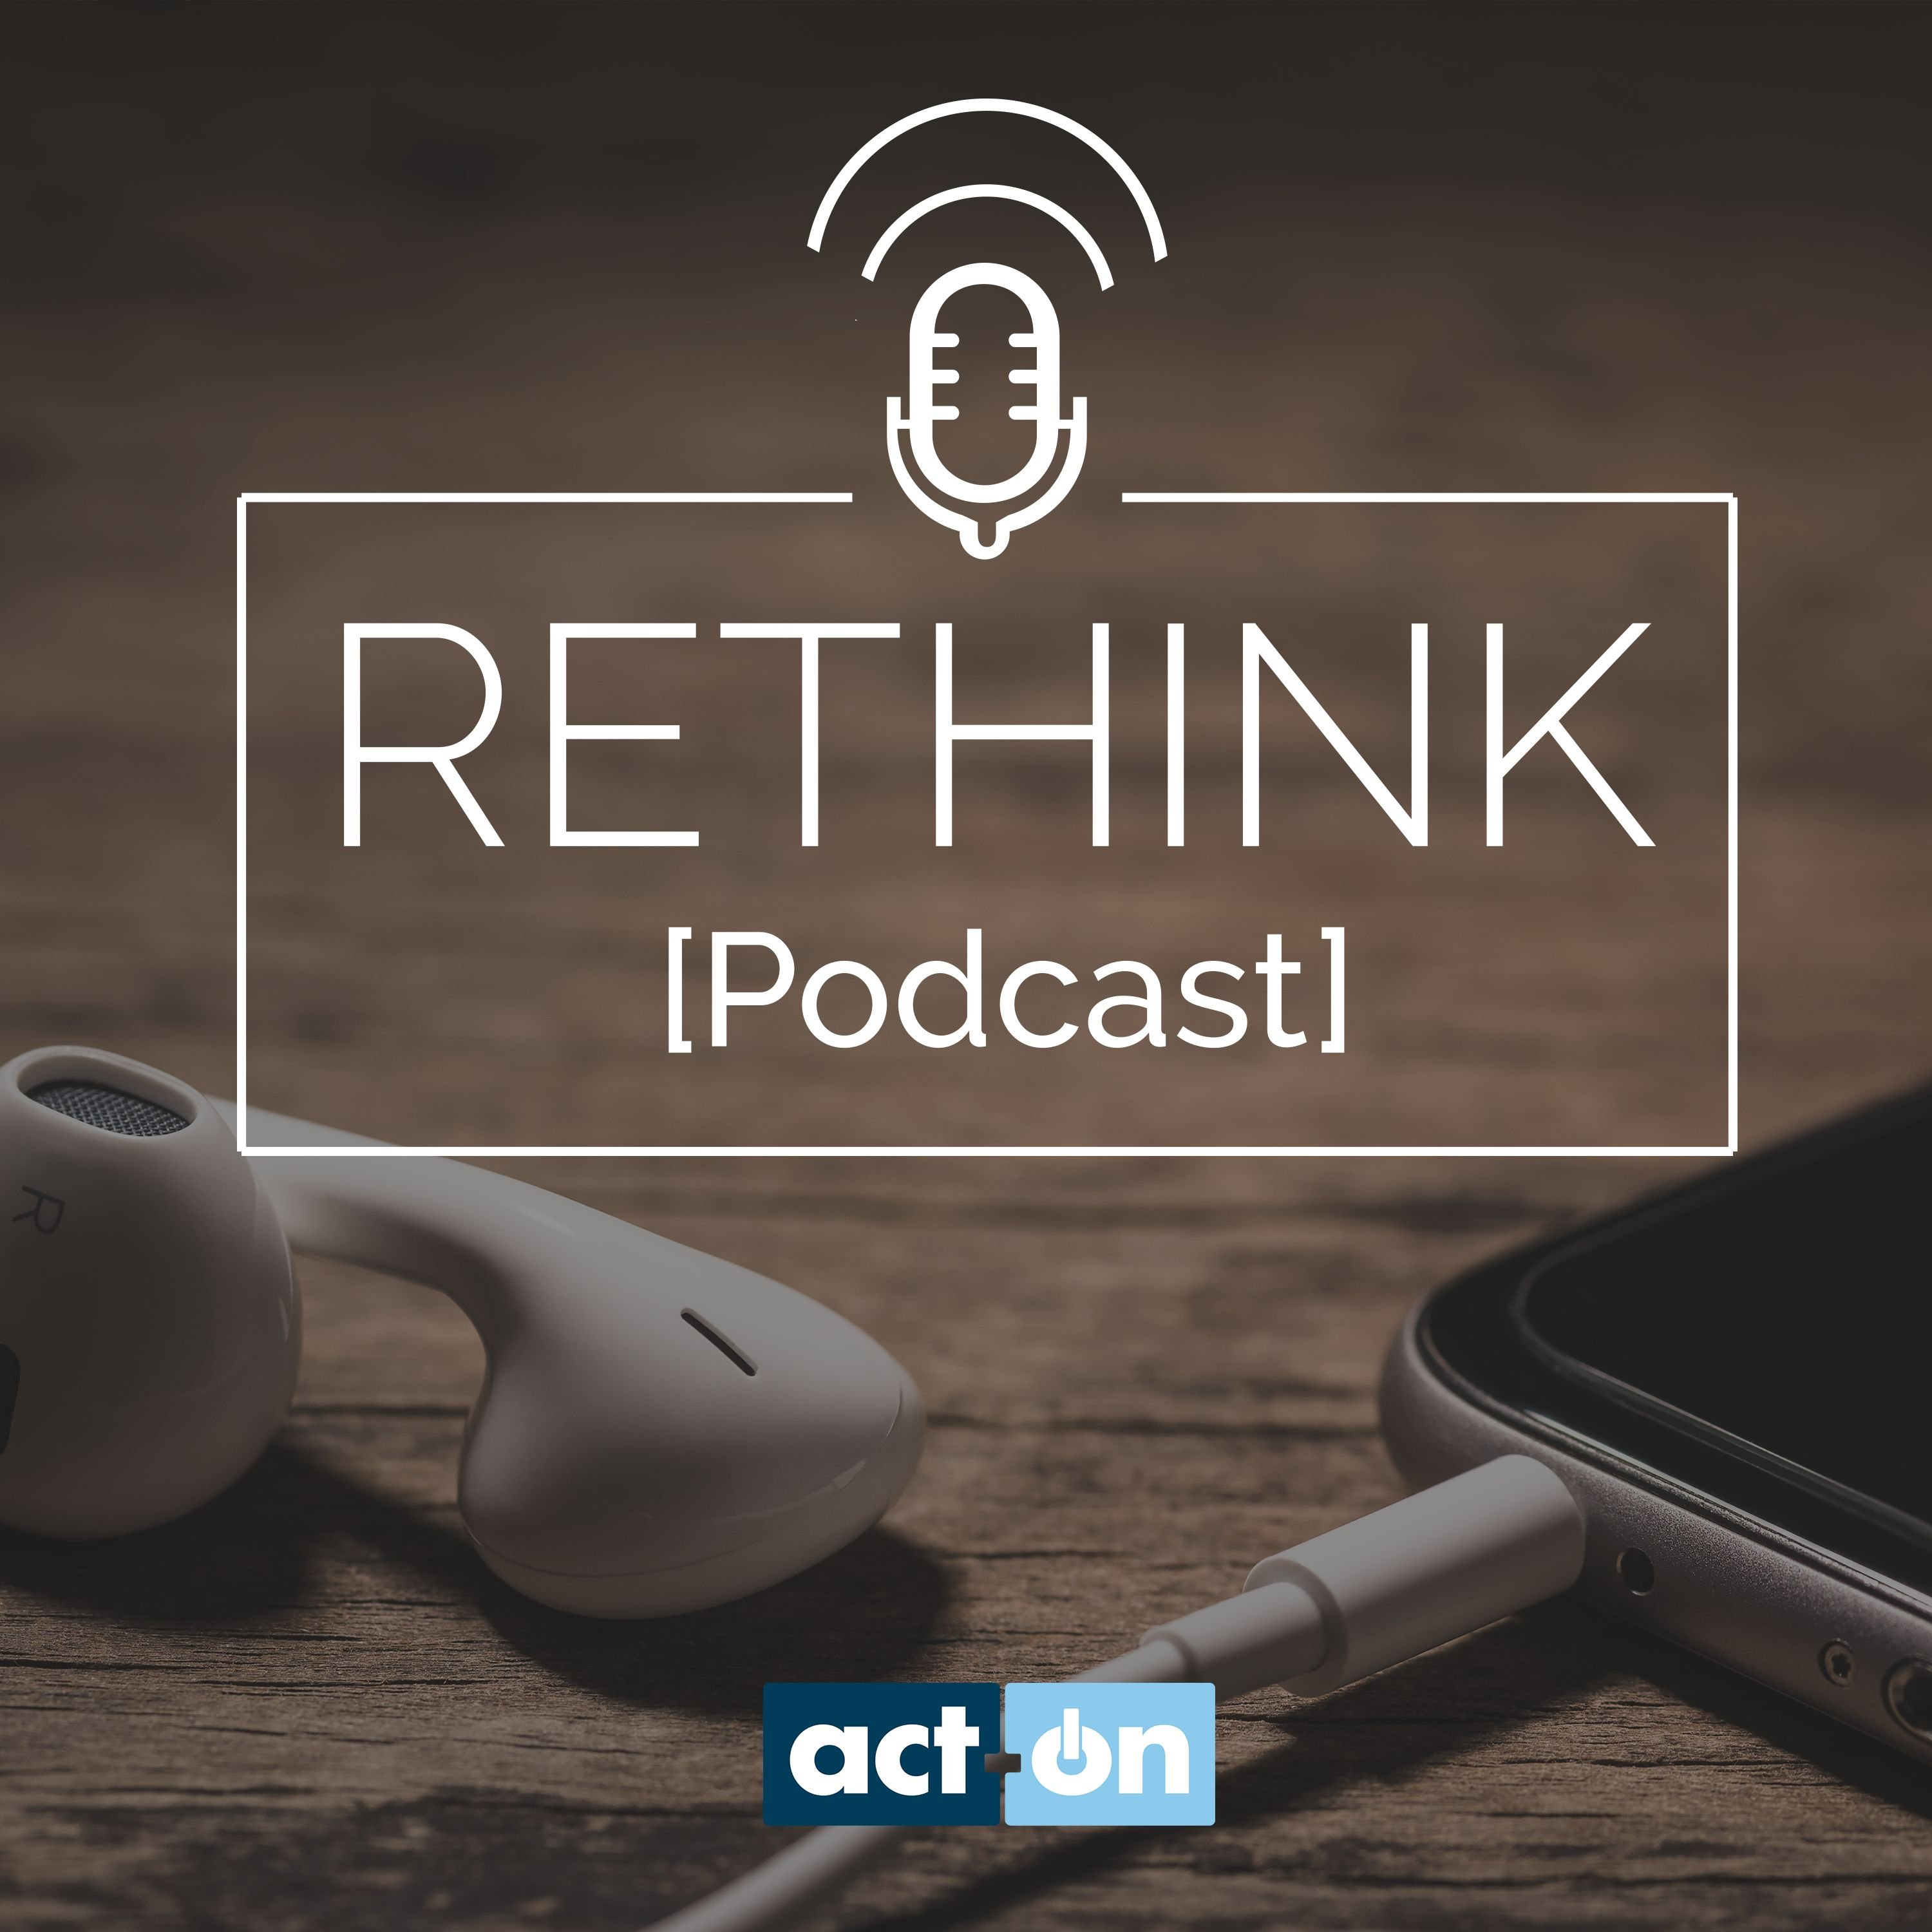 Rethink marketing podcast